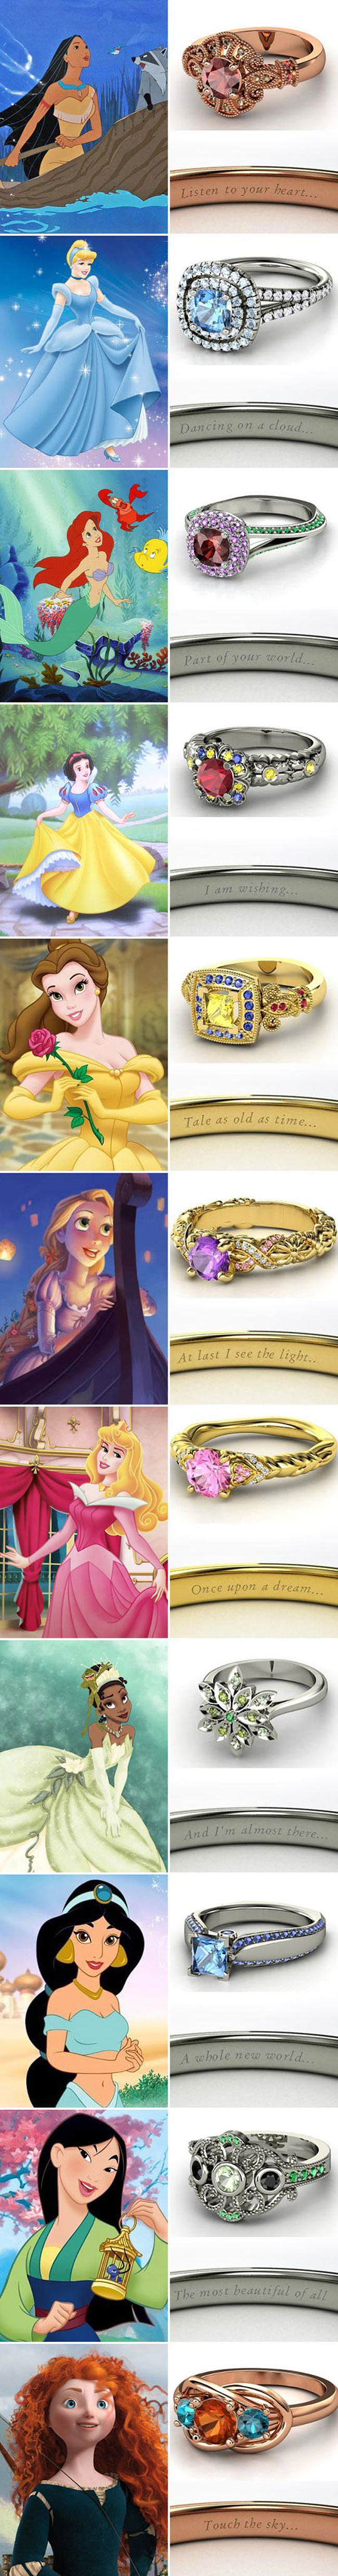 disney-princesses-rings-colors